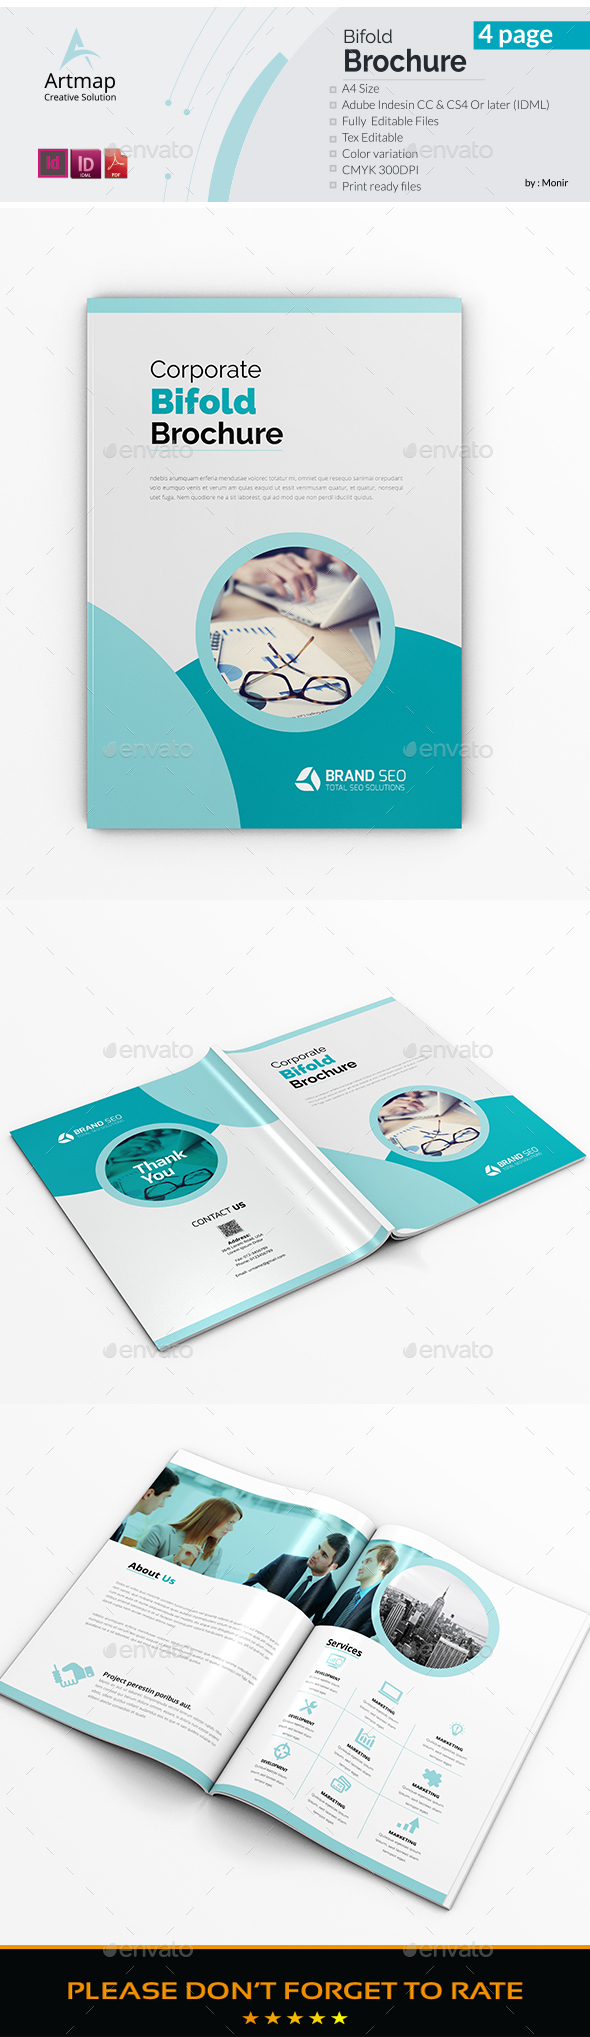 GraphicRiver Bifold Brochure 21185301